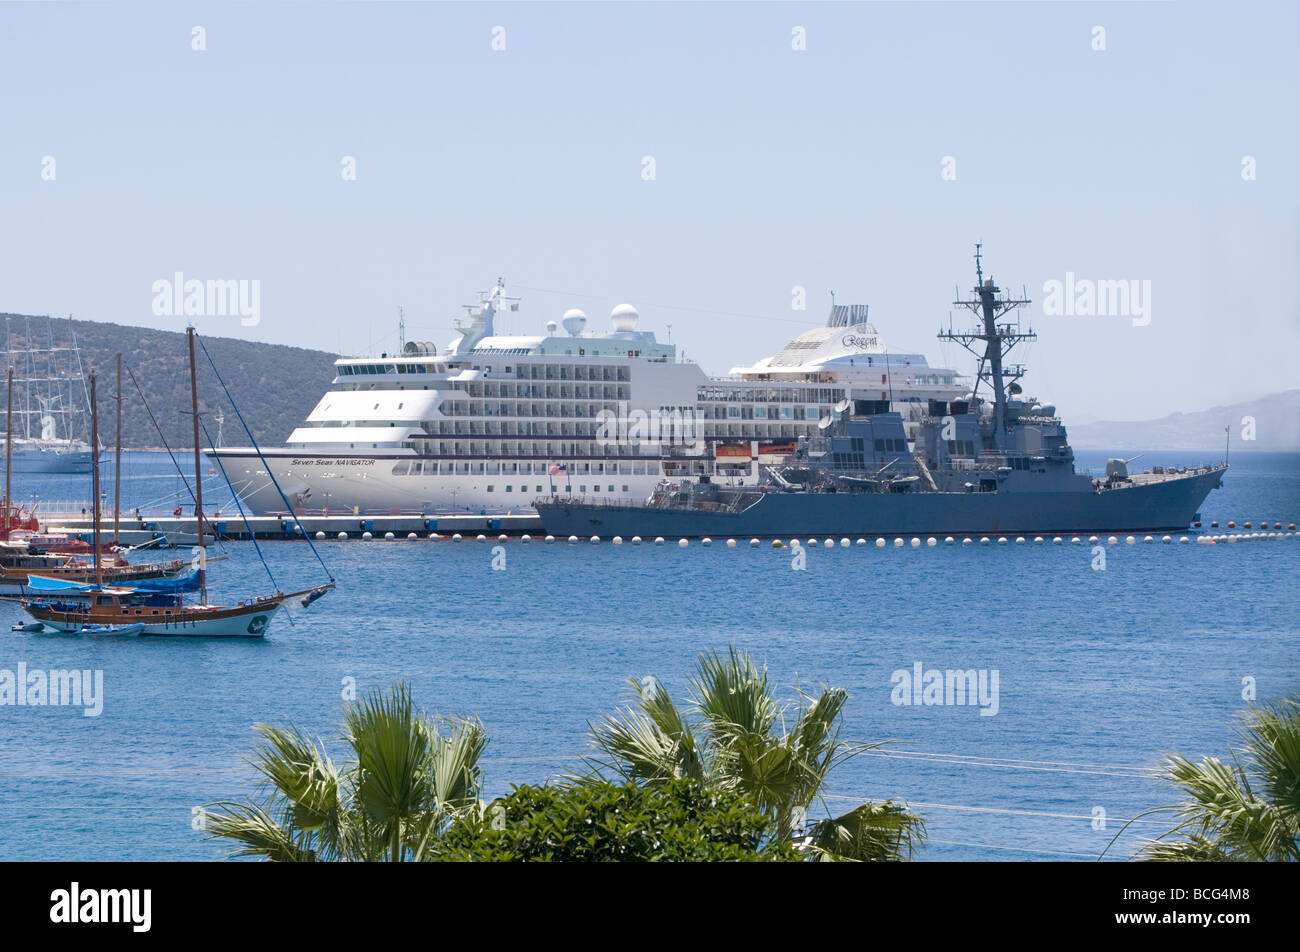 Variety of ships in harbour - Bodrum, Turkey., Asia Minor, Eurasia - Stock Image